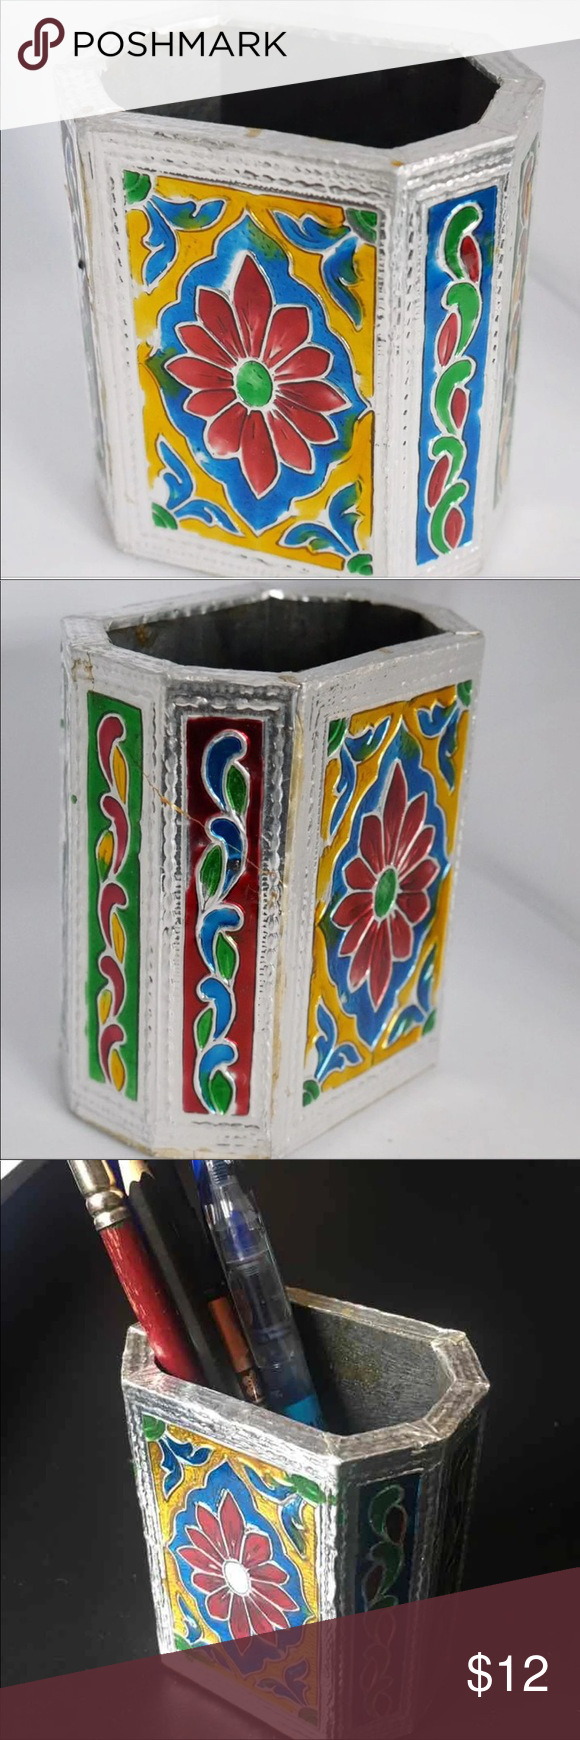 Enamel work Indian Makeup Cup This is brand new and never